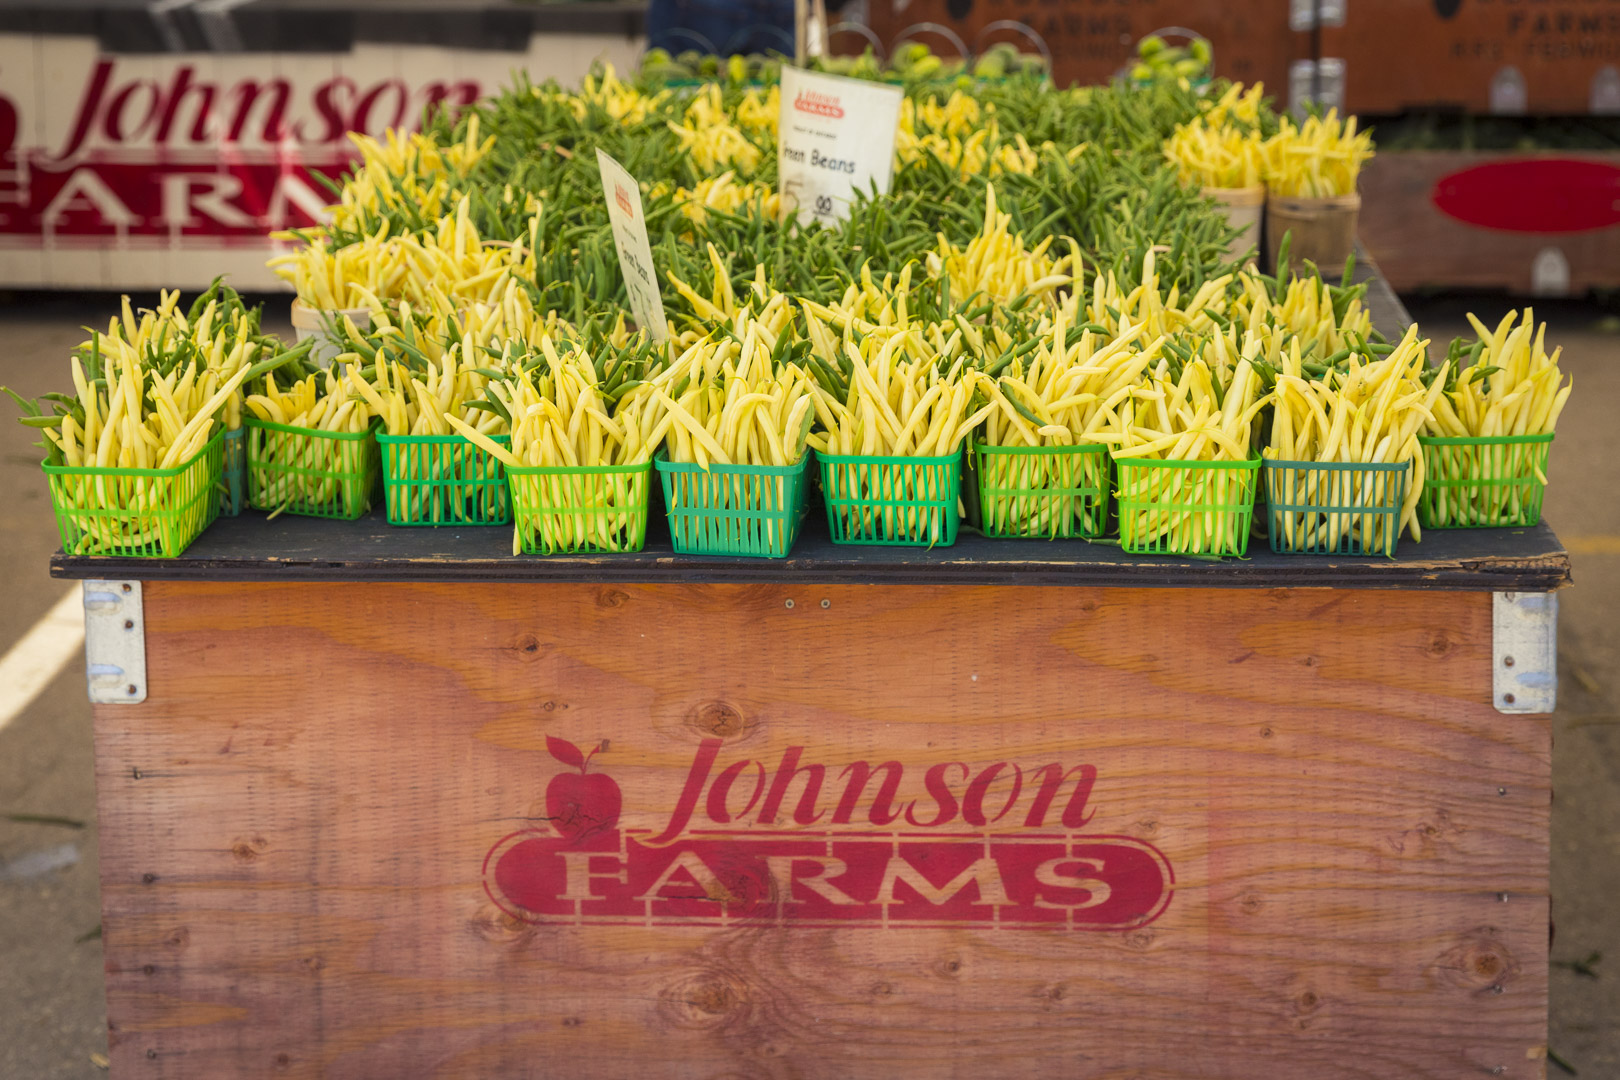 Green Beans & Yellow Beans from Johnson Farms